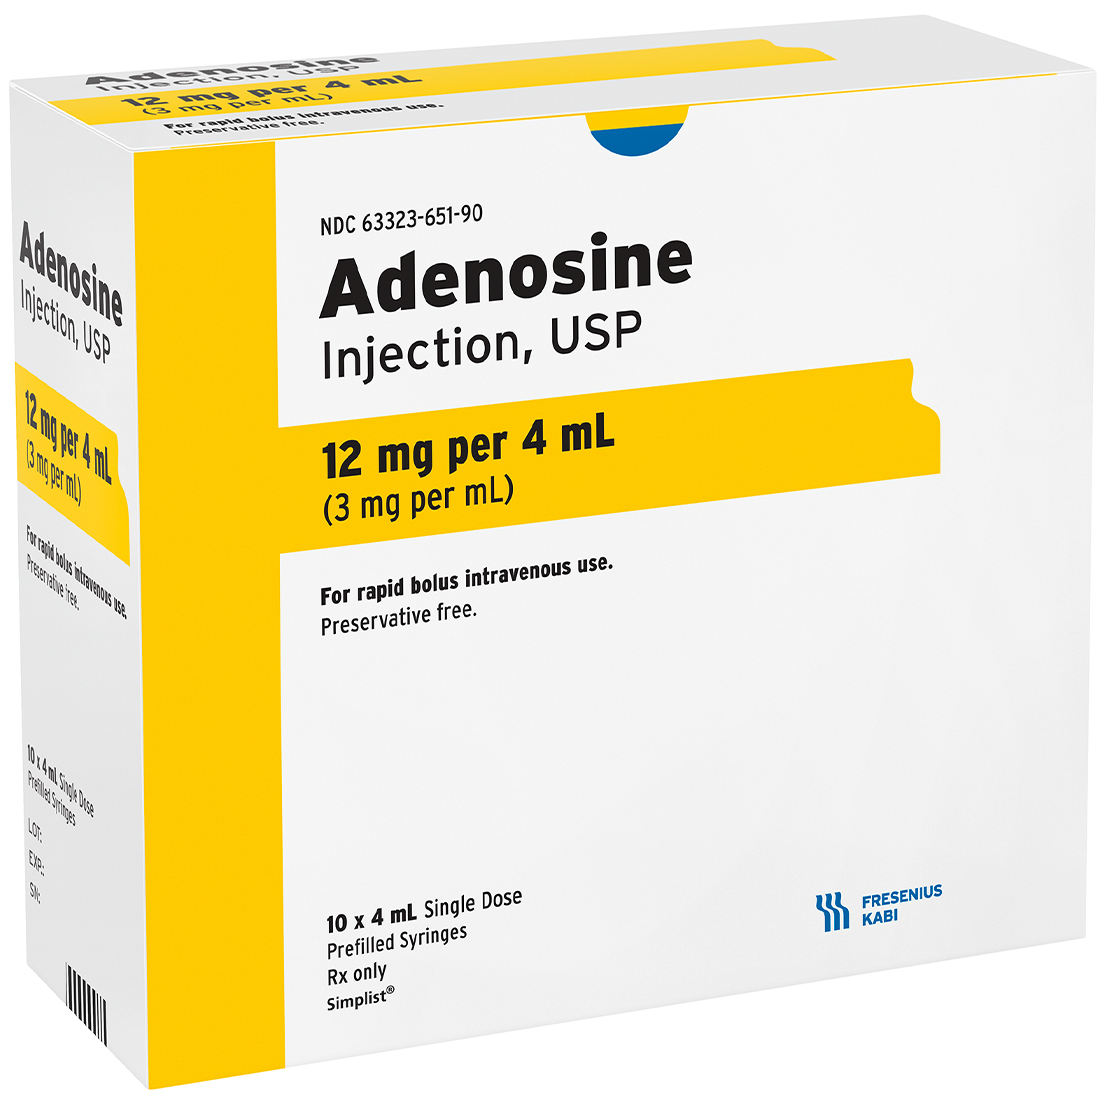 Volume Carton image for 12 mg per 4 mL of Adenosine